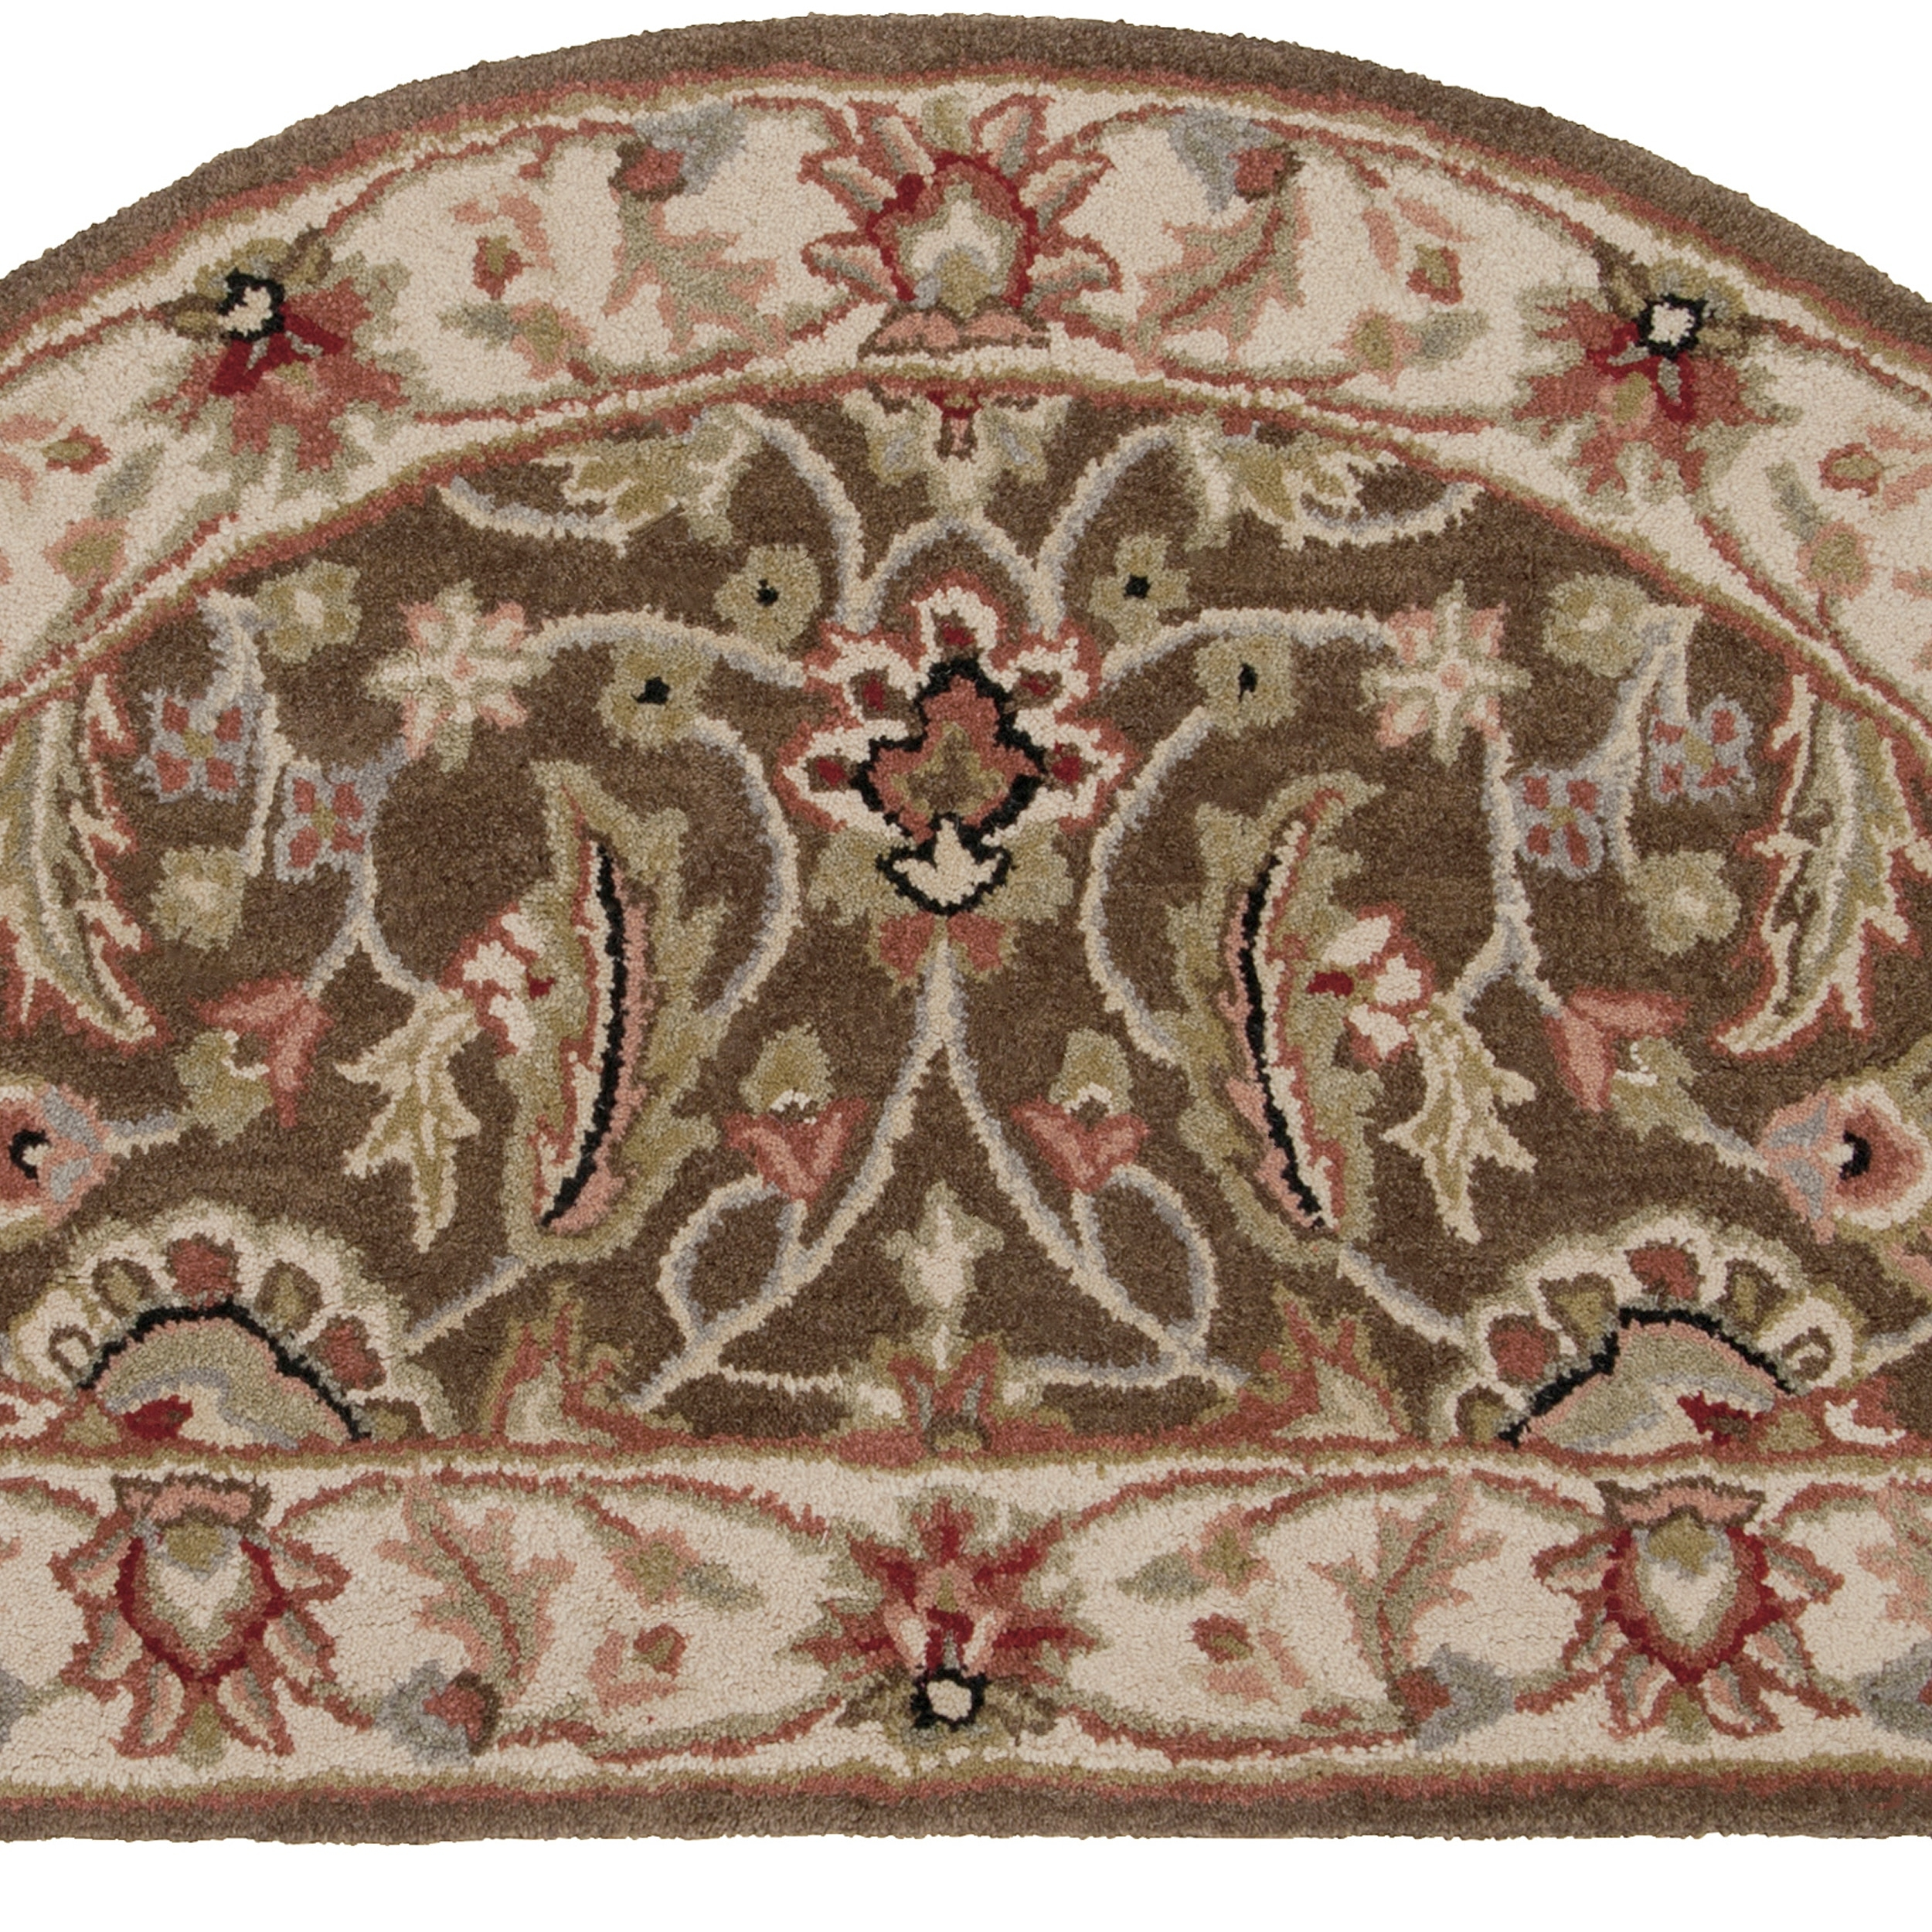 Hearth Rugs Regarding Hearth Rugs (Image 9 of 15)